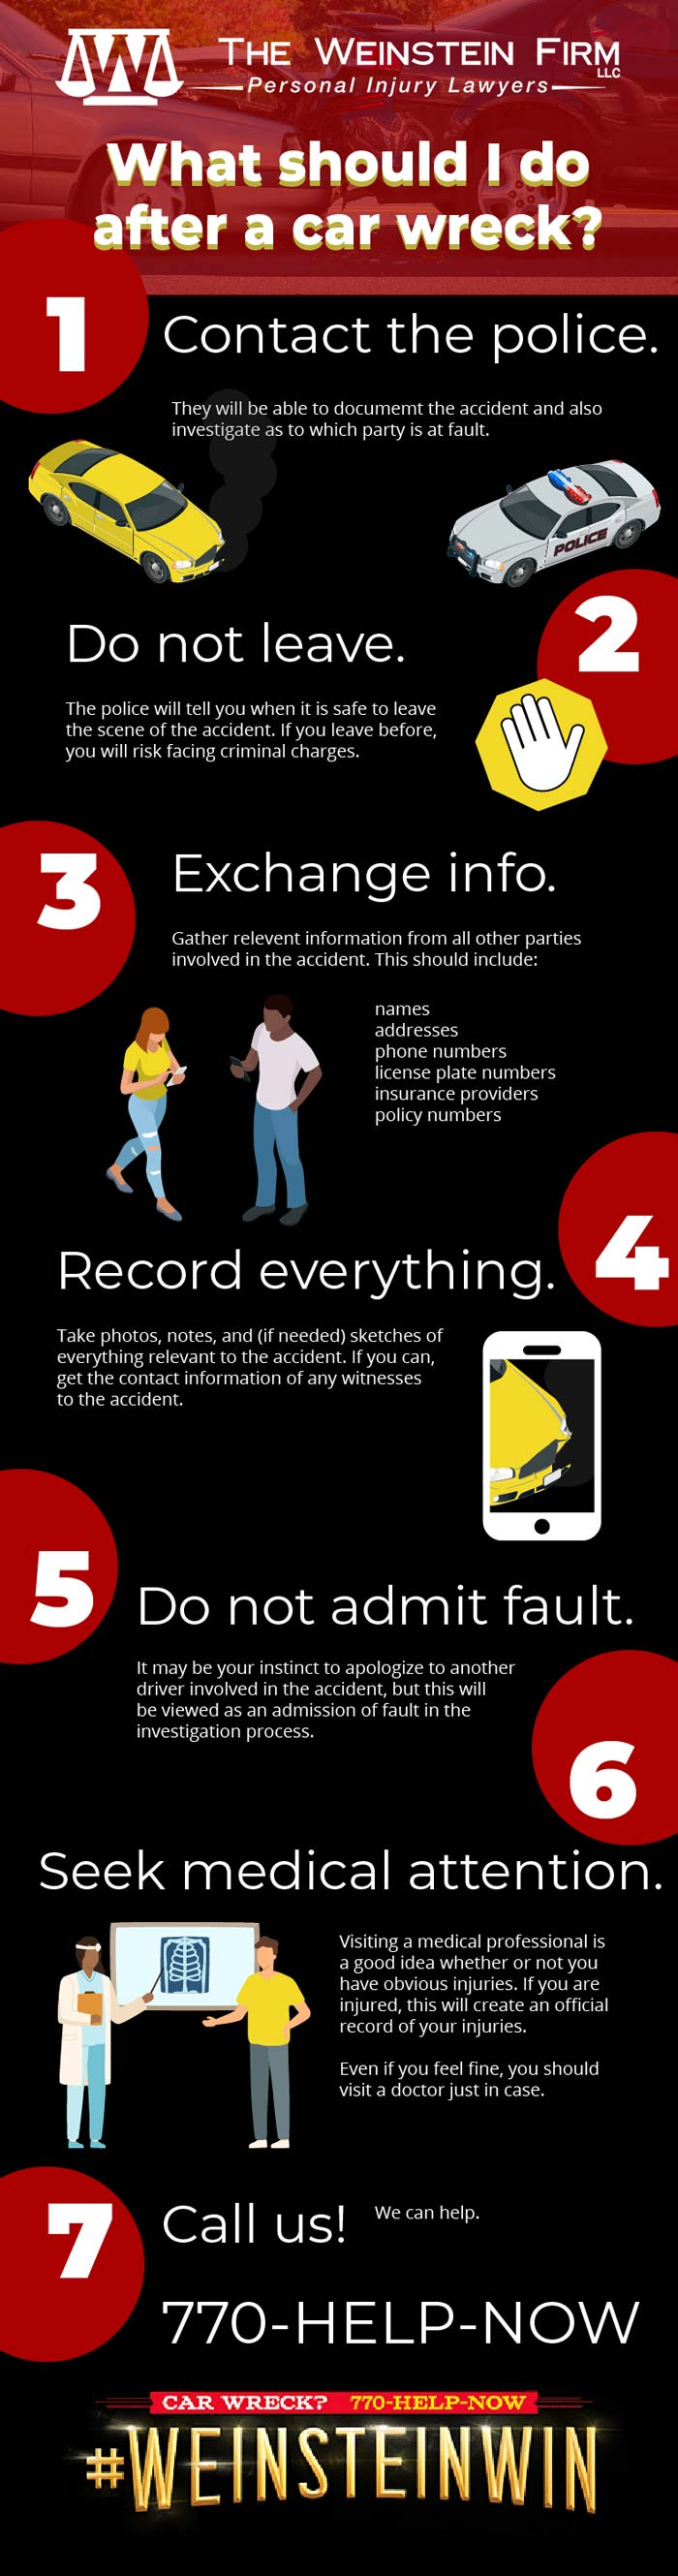 What to do after a car accident in Atlanta, GA? (Infographic)